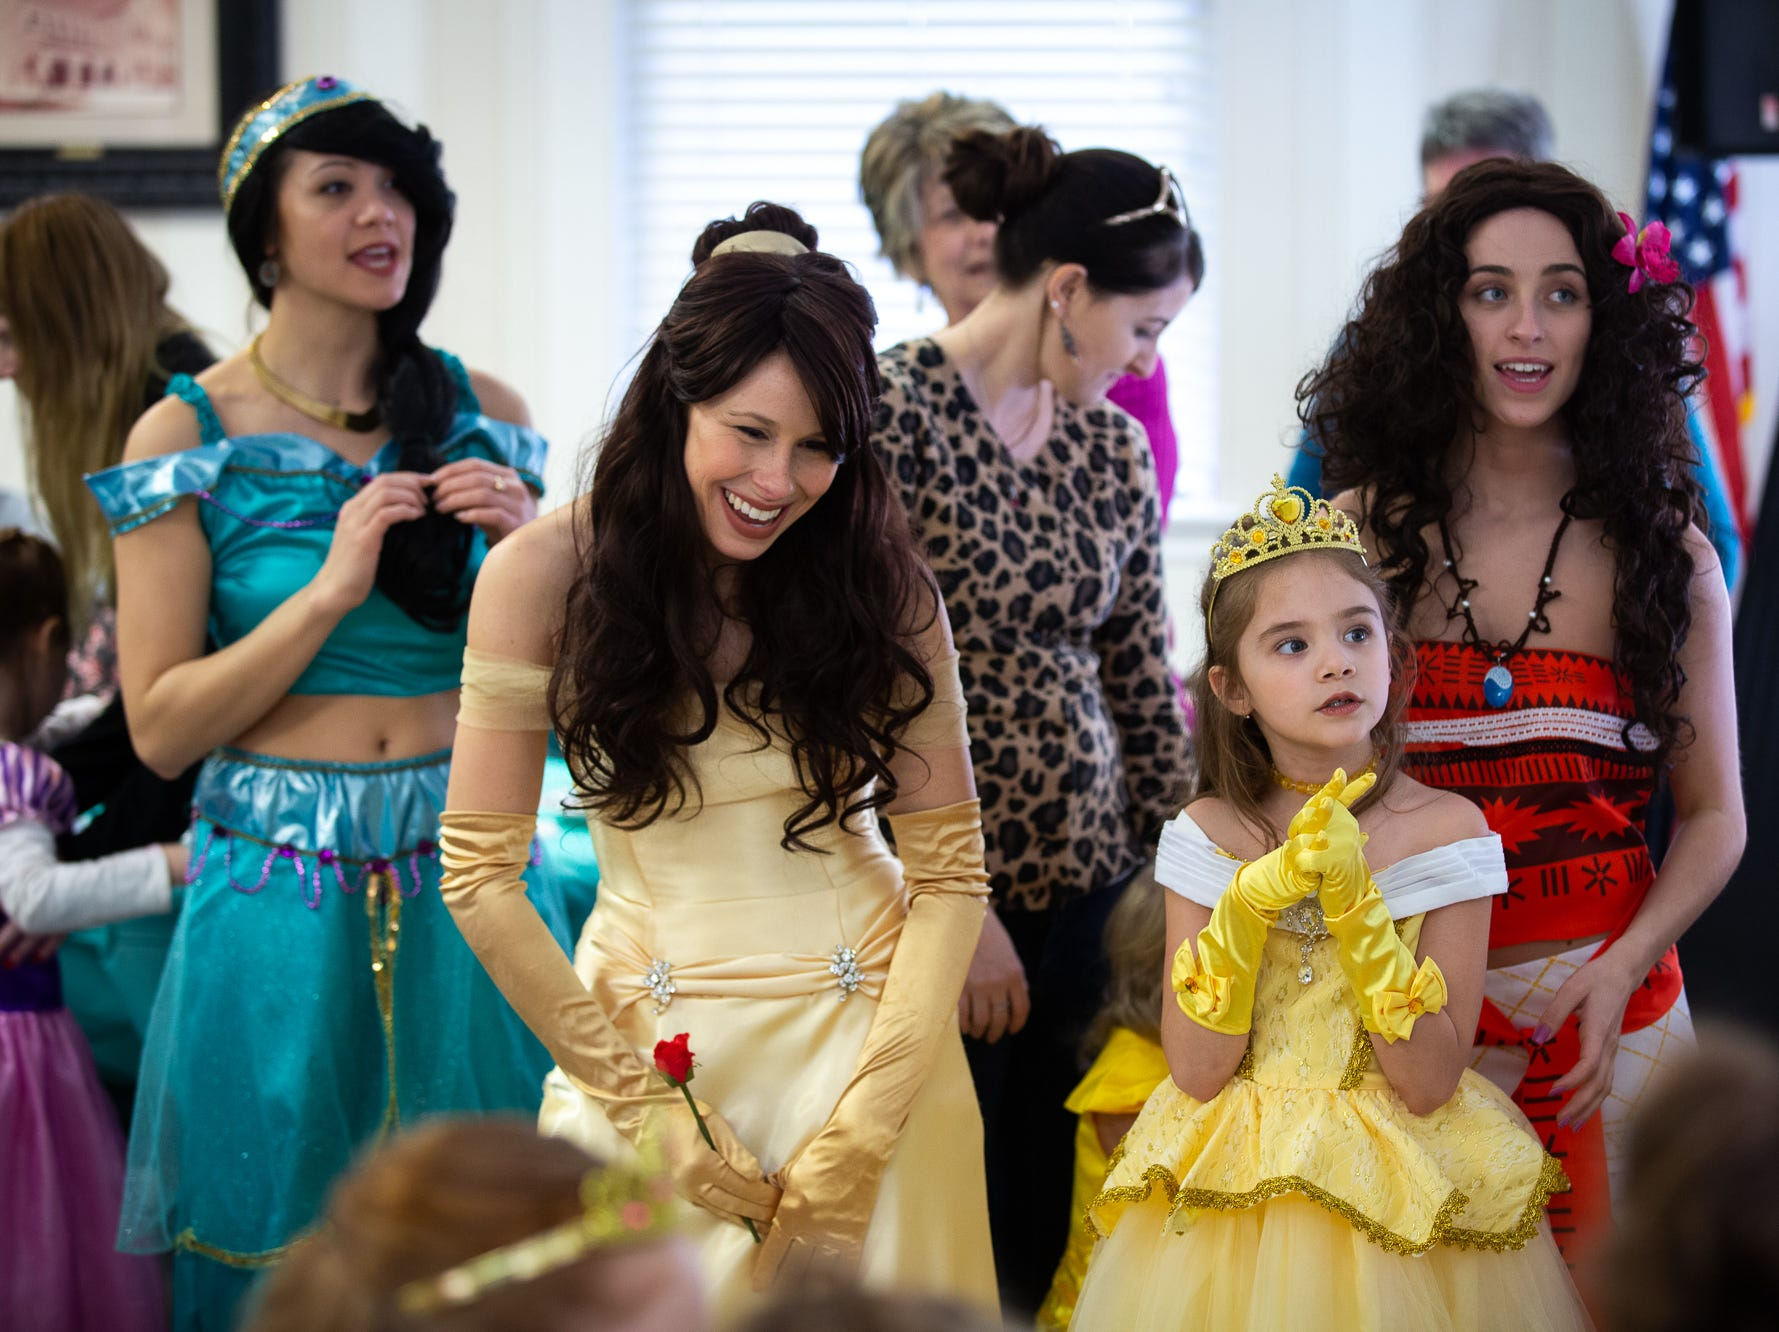 Princess Belle sings along with Skylar, 6, also dressed as princess Belle, during a princess teatime hosted by the Black Rose Rollers, Saturday, Feb. 9, 2019, at the Hanover YWCA.